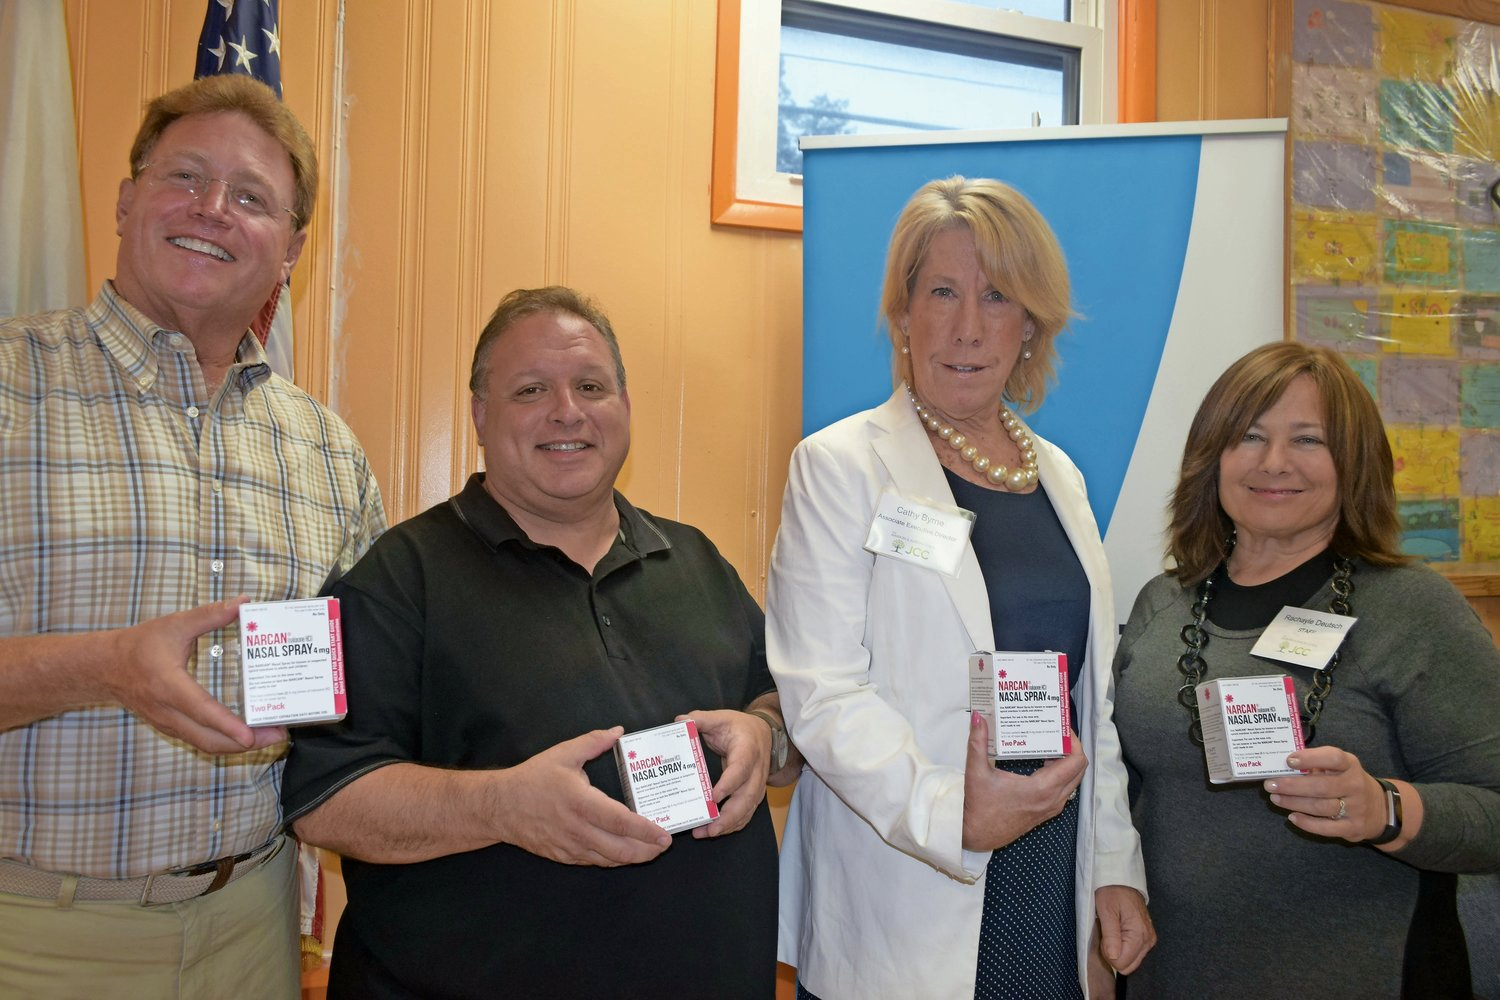 The drug coalition took shape after the Gural JCC hosted a Narcan training last August. From left in 2018 were JCC President Steve Bernstein; David Hymowitz, education director for the Nassau County Department of Human Services; JCC Associate Director Cathy Byrne; and Rachayle Deutsch, the JCC's director of cultural arts and education.